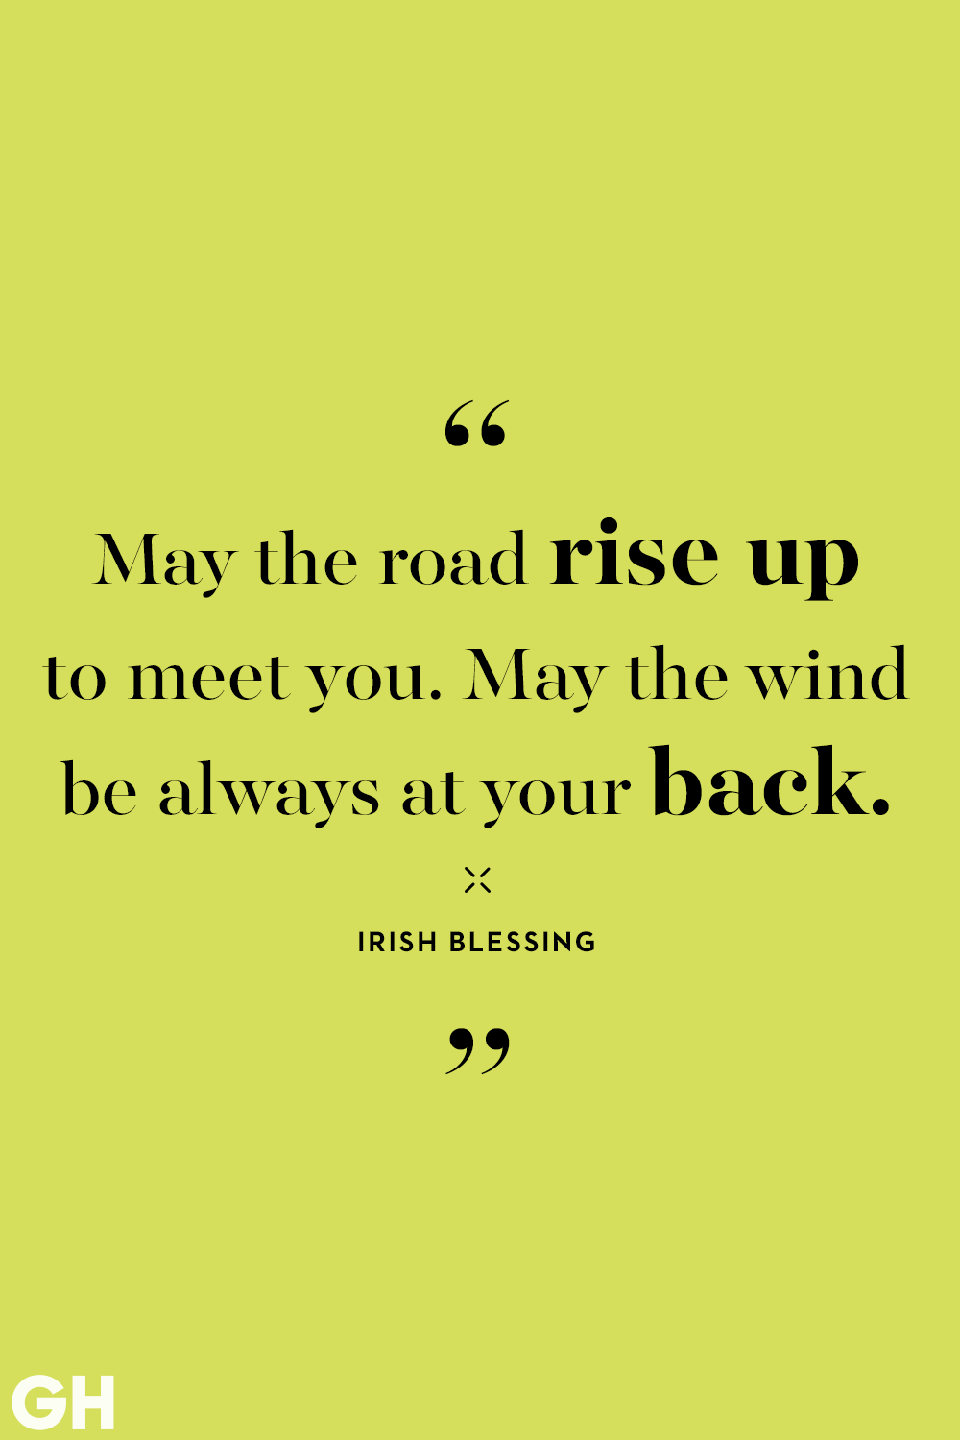 <p>May the road rise up to meet you. May the wind be always at your back. </p>